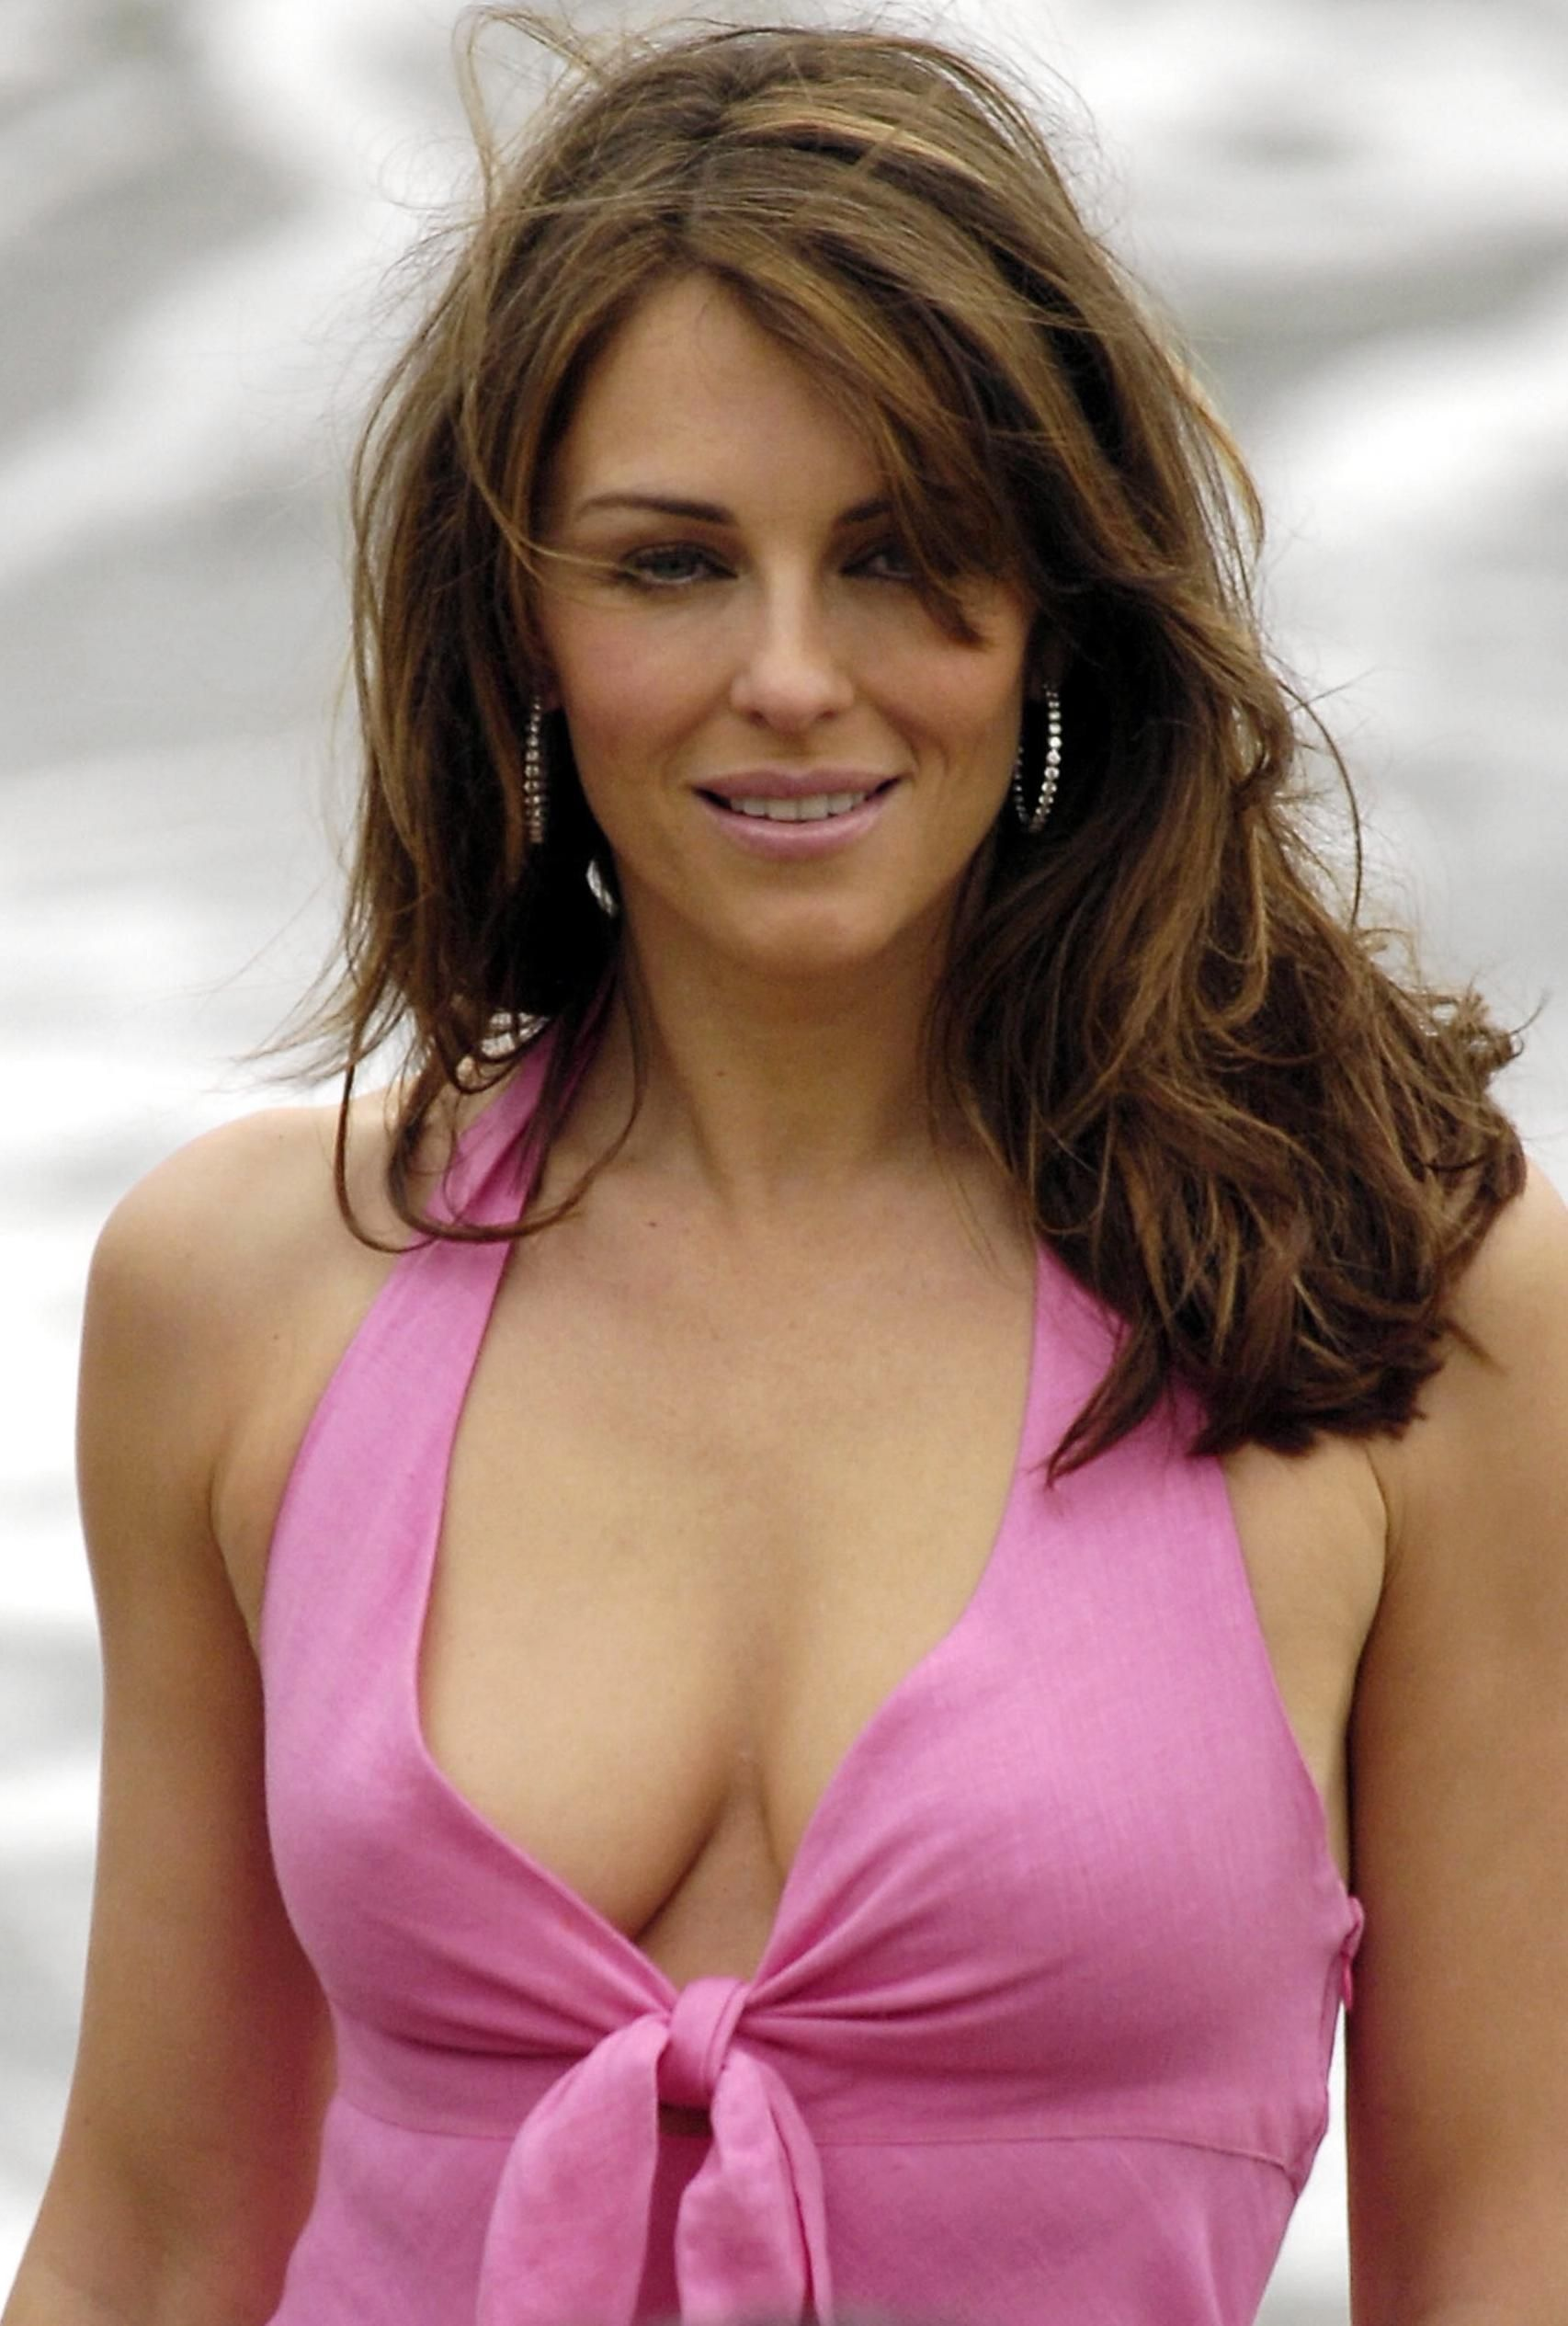 Celebrites Elizabeth Hurley nudes (87 photo), Topless, Bikini, Instagram, in bikini 2019